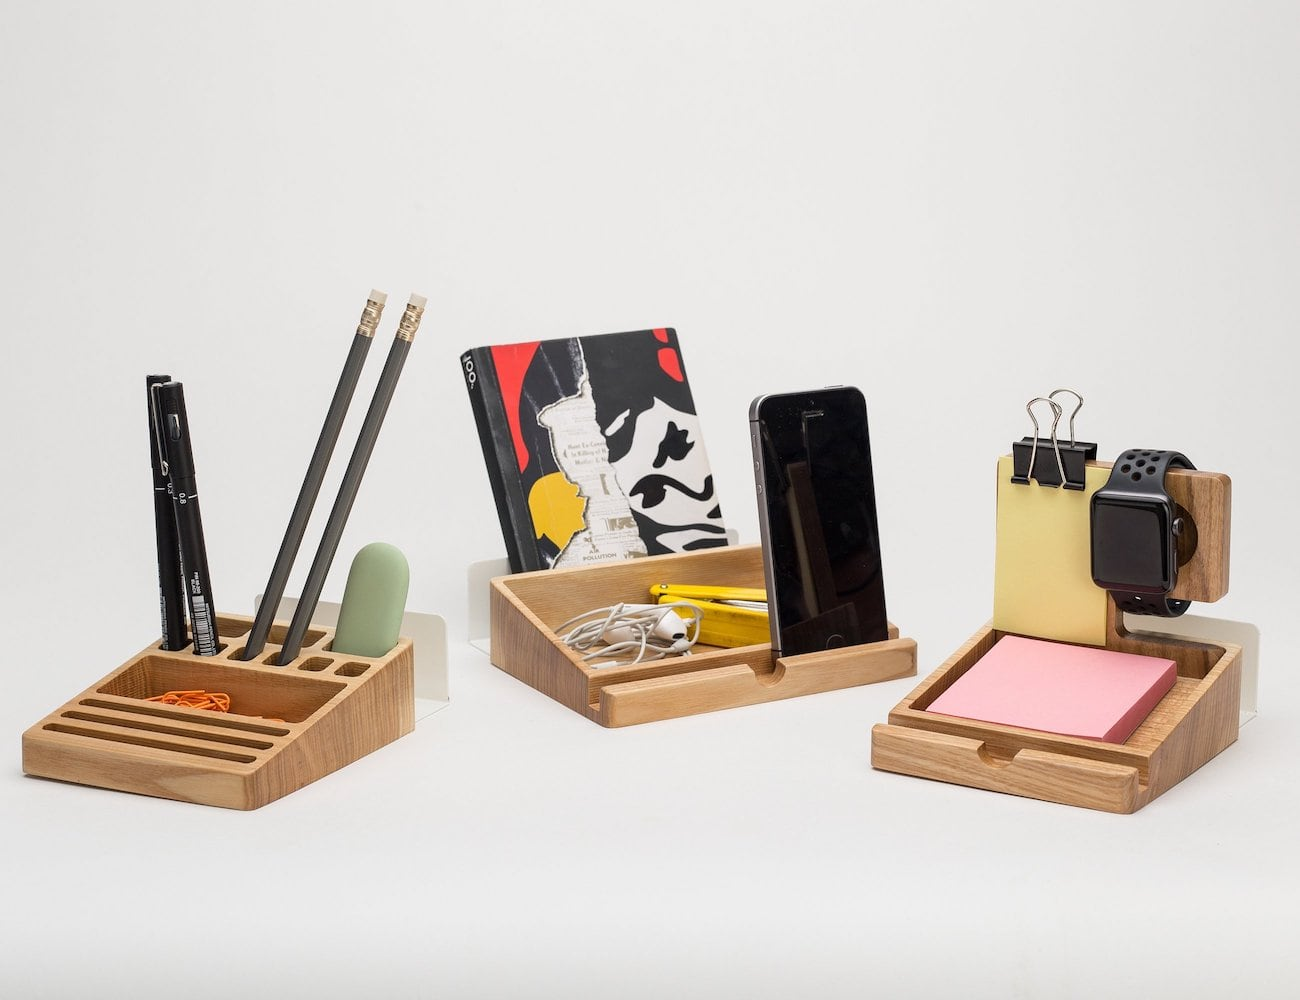 Wood Desk Organizer Set Wooden Desk Organizer Set Has Three Wooden Blocks For Easy